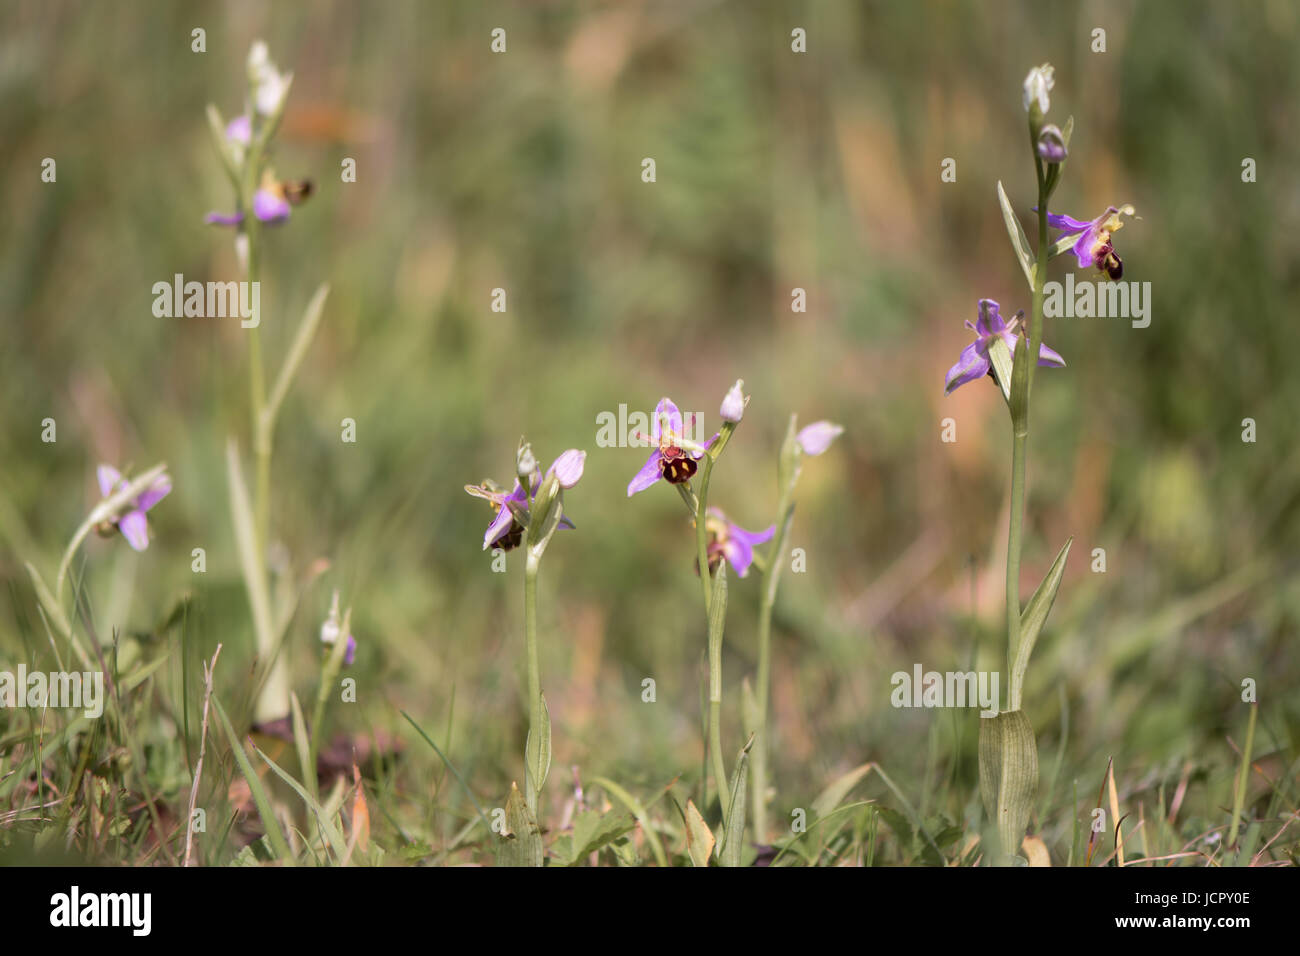 Group of bee orchids (Ophrys apifera) in flower. Plants in the family Orchidaceae, mimicing female bees to attract - Stock Image